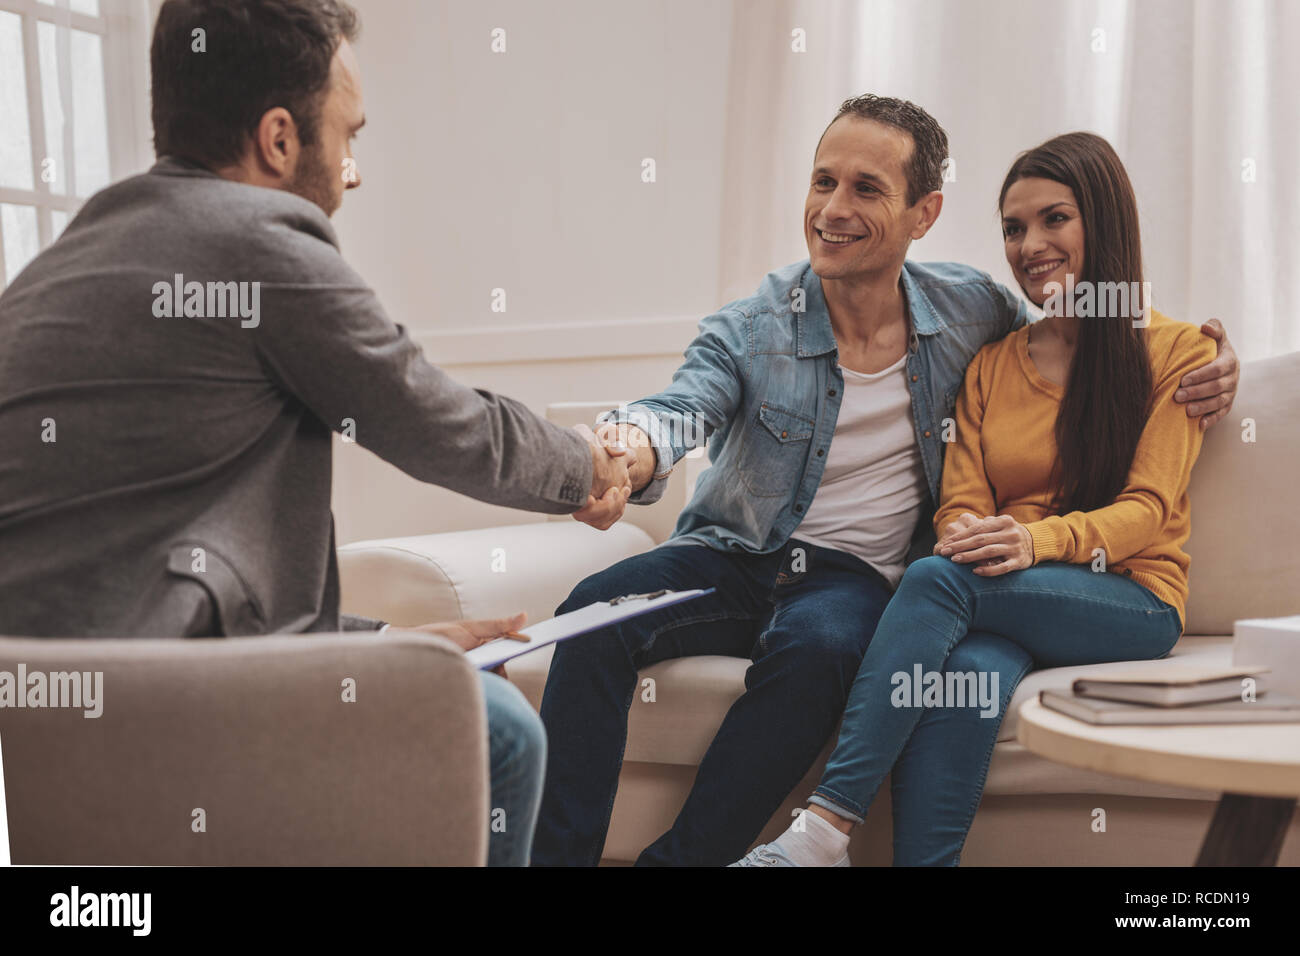 Happy man feeling satisfied after family relations session - Stock Image